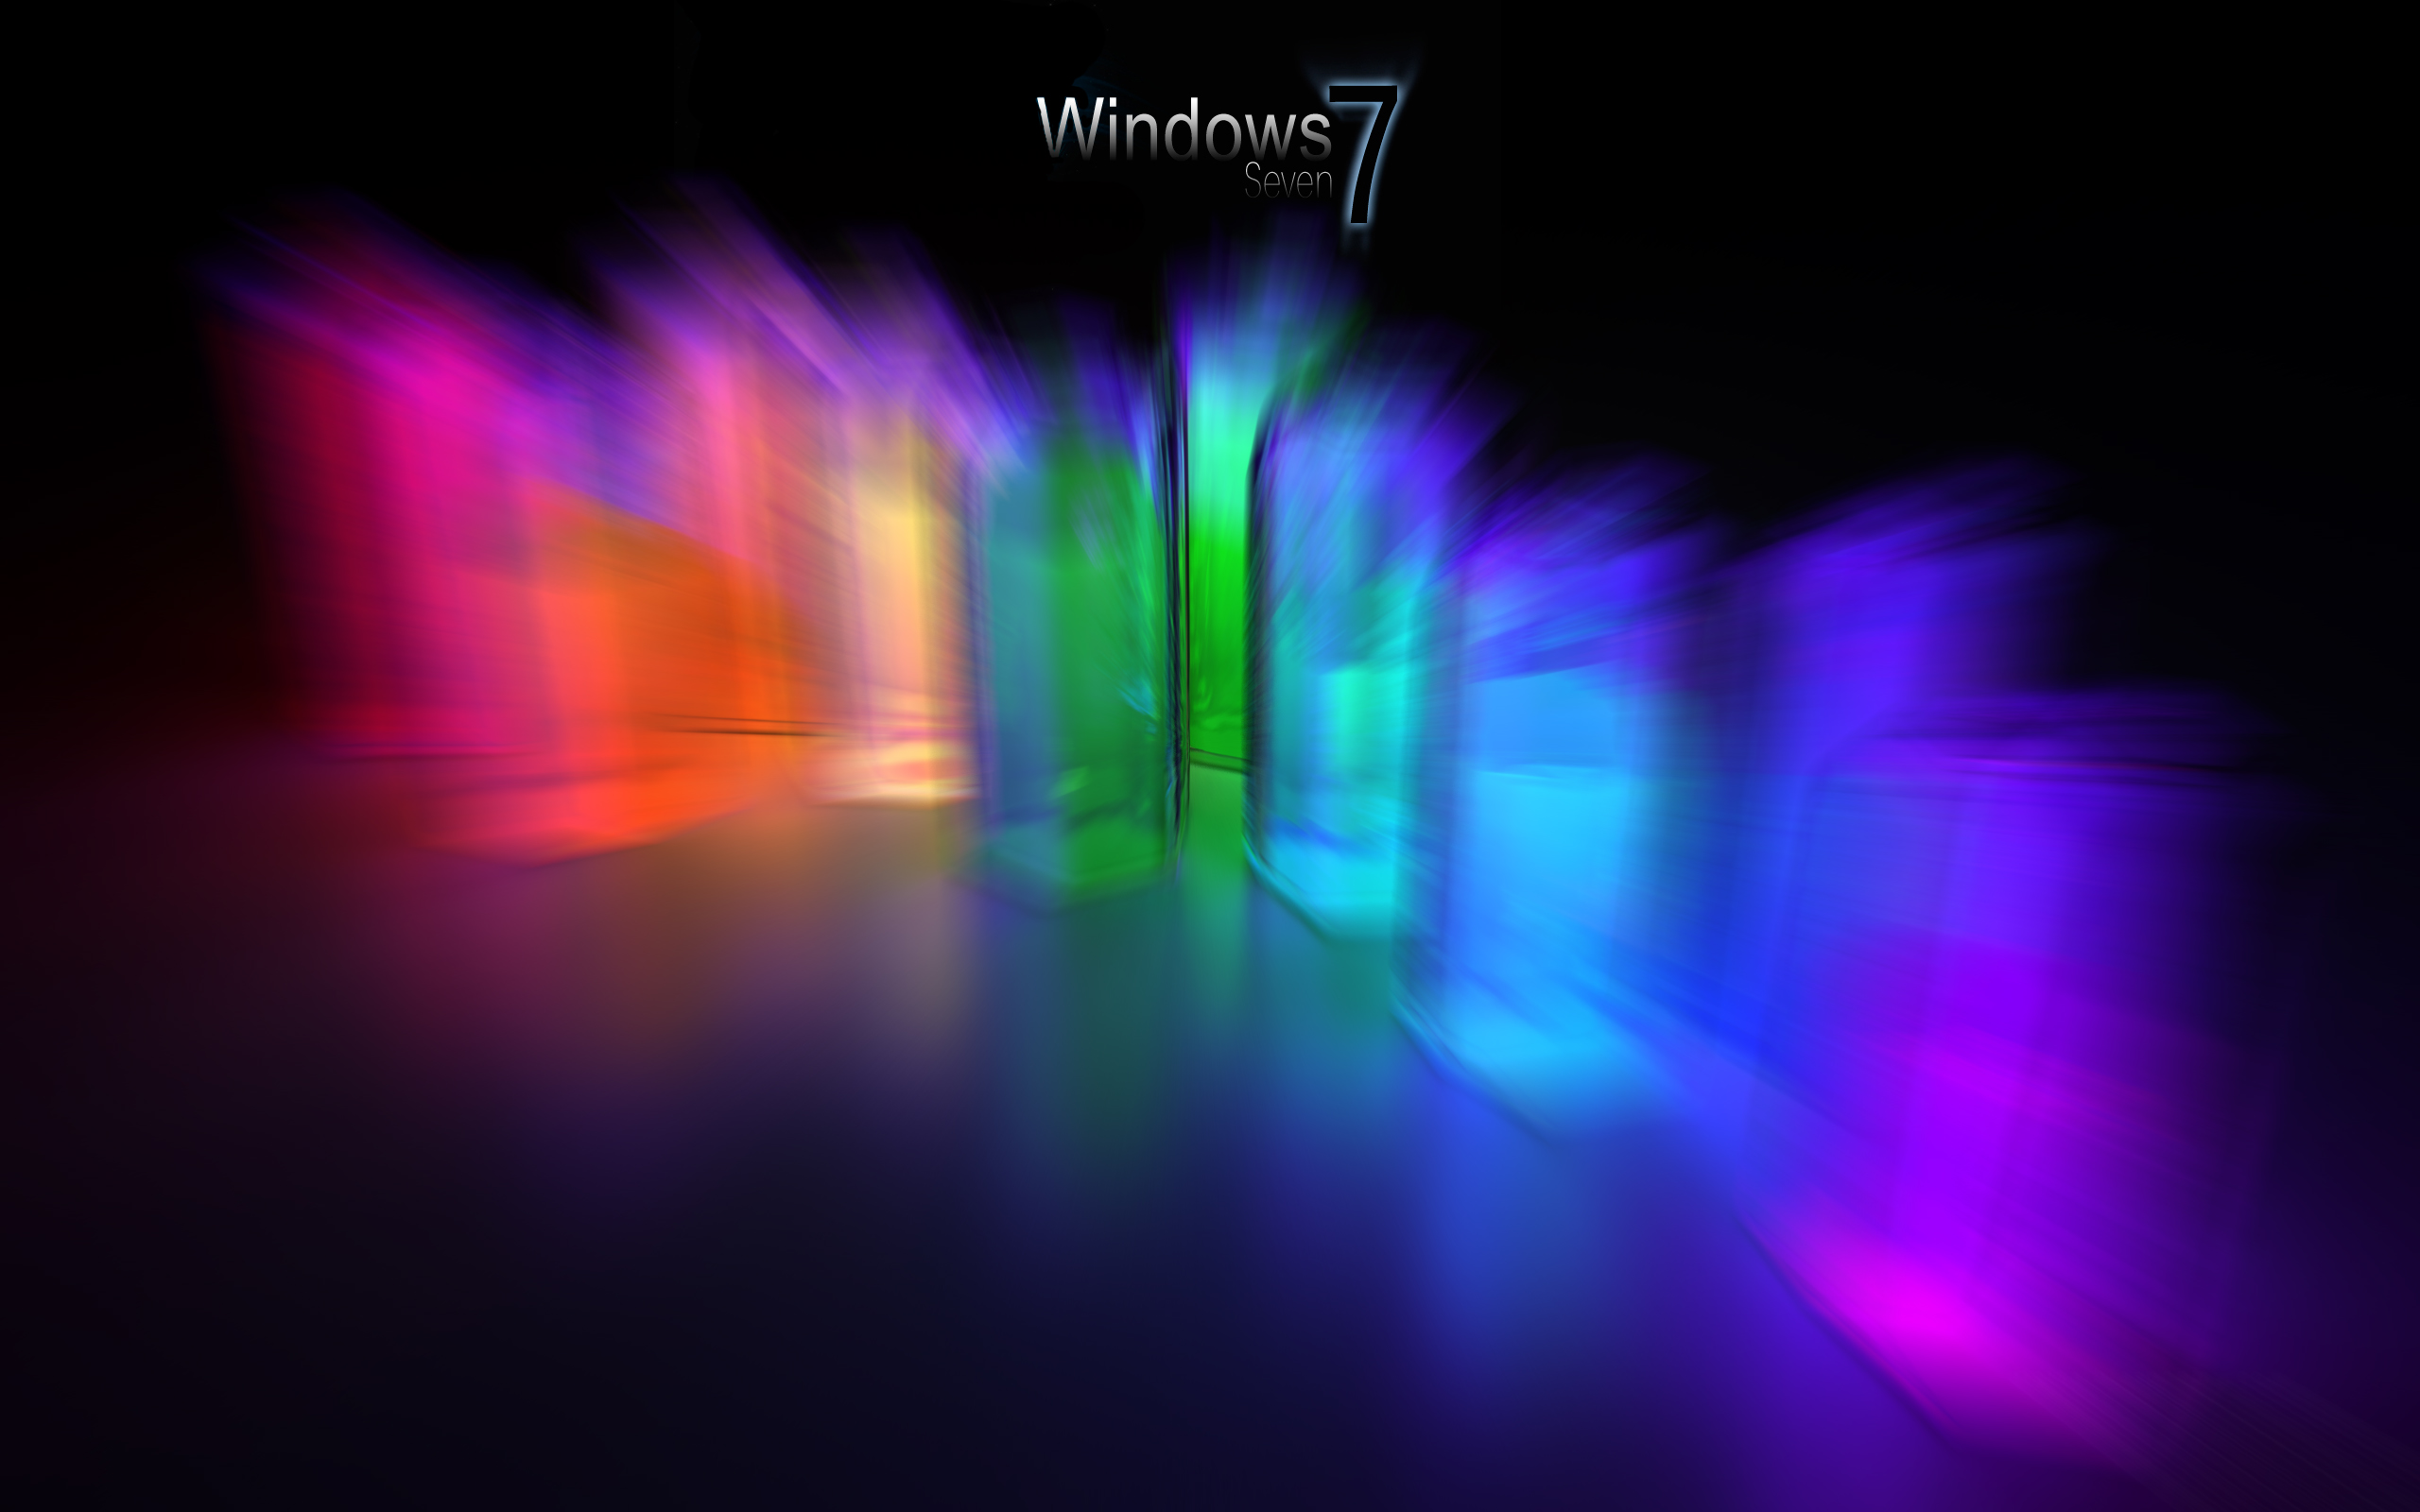 Free windows 7 high quality wallpapers for High quality windows